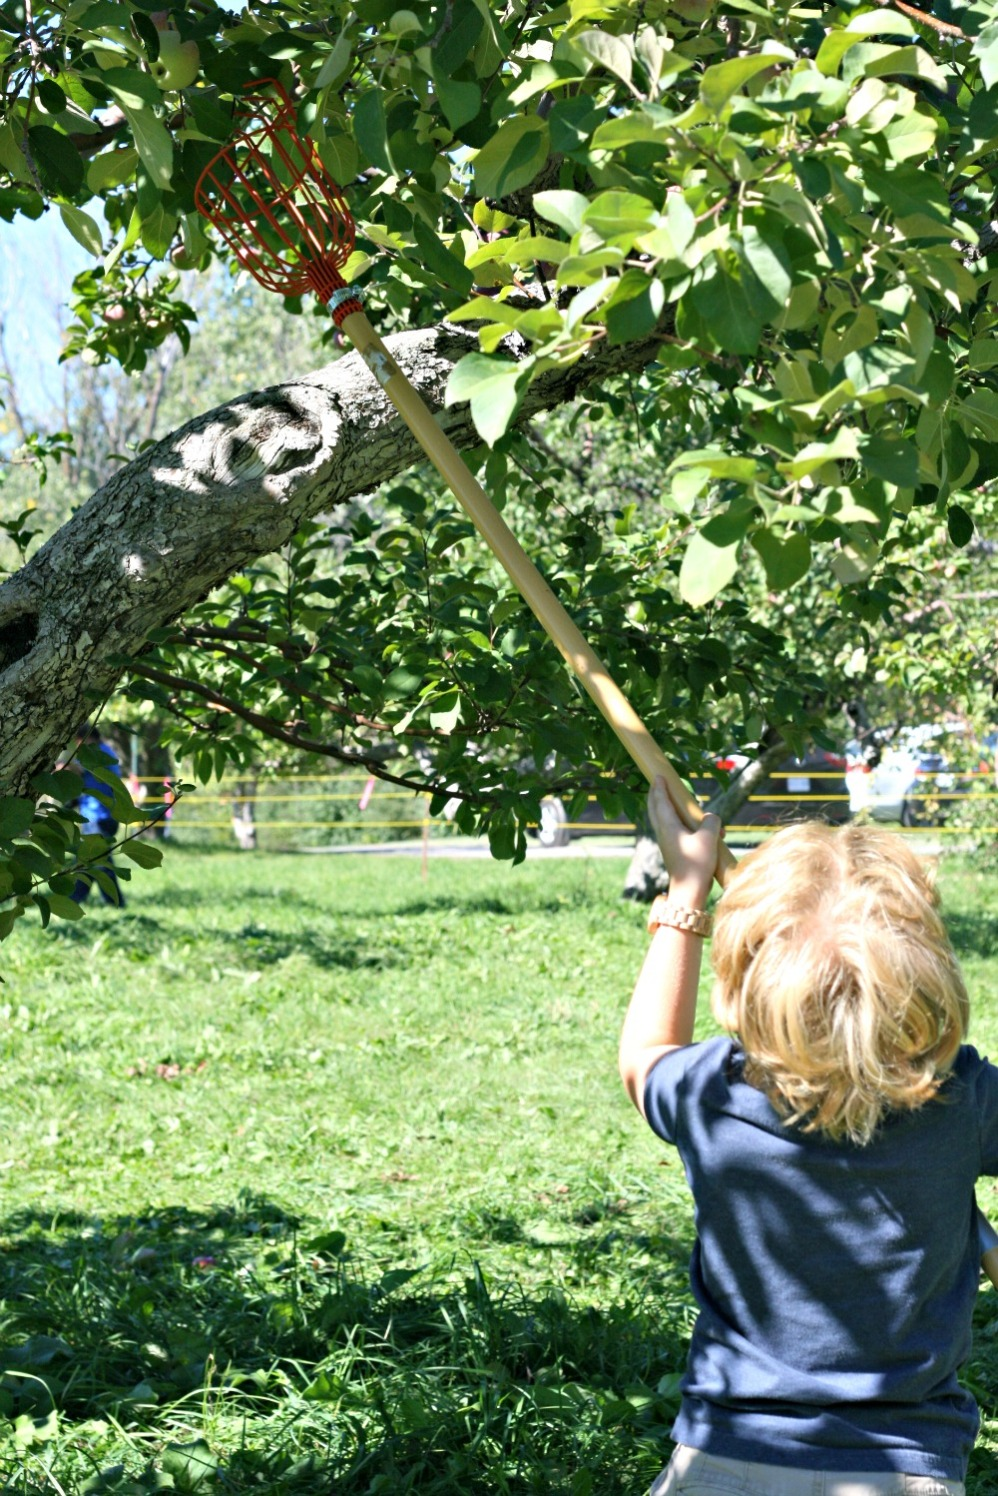 apple-picking-j-reaching-with-picker